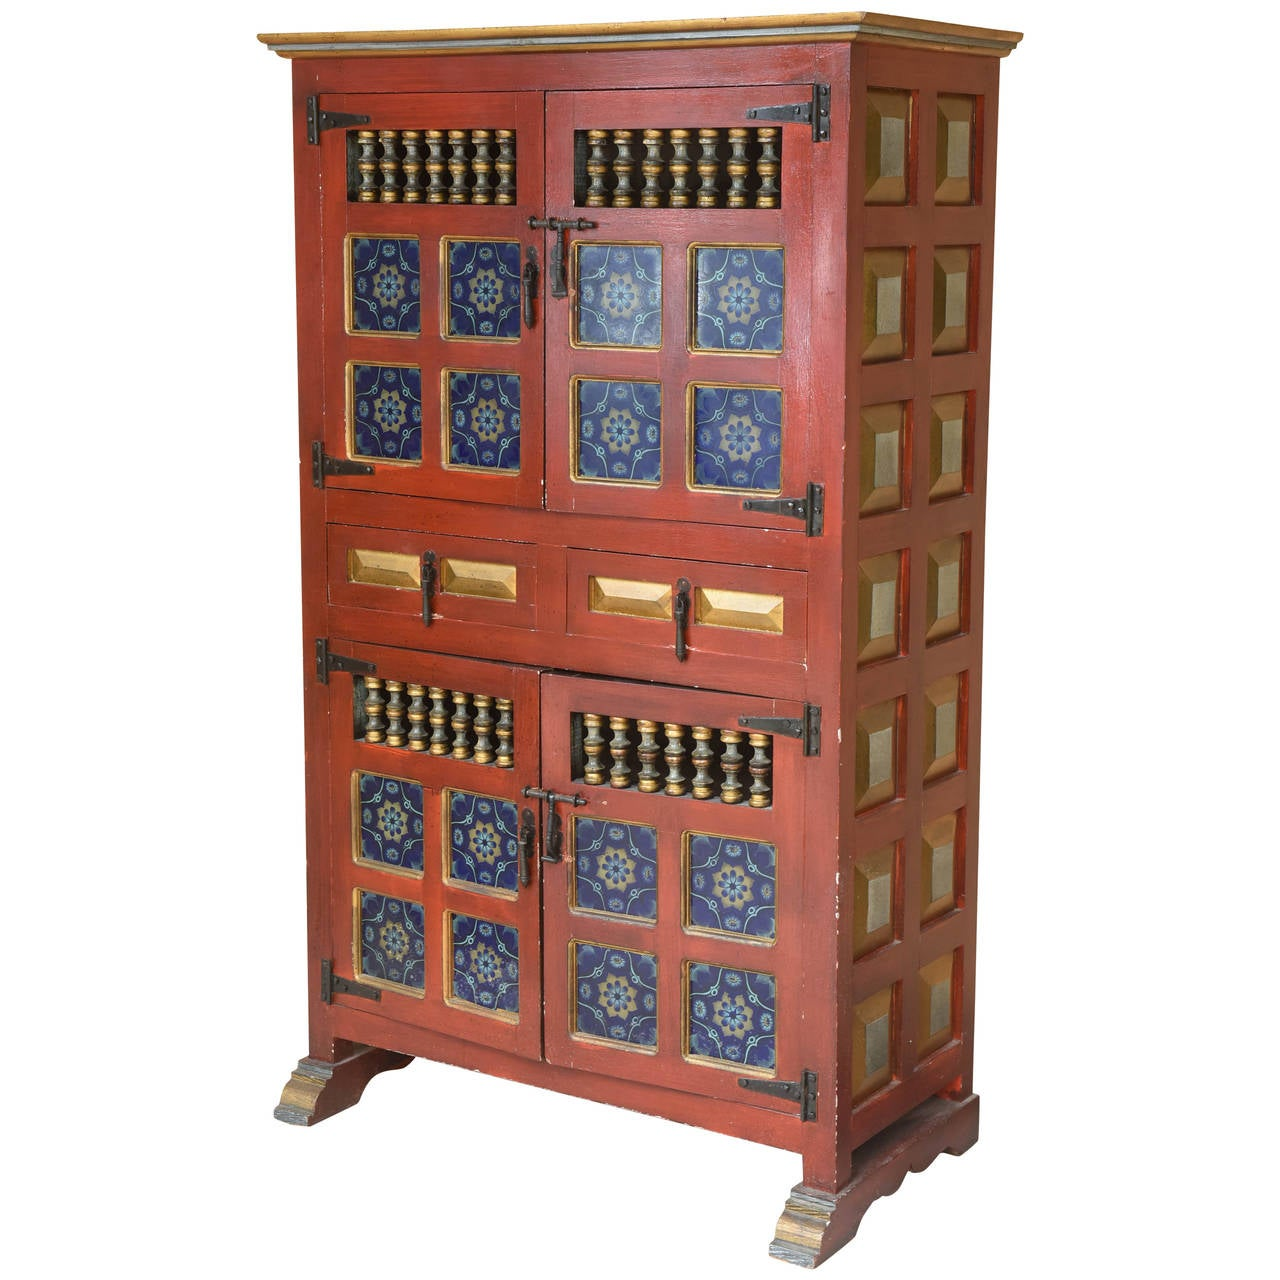 Antique kitchen cupboard - Spanish Hand Painted Antique Kitchen Cupboard With Blue Tiles 1